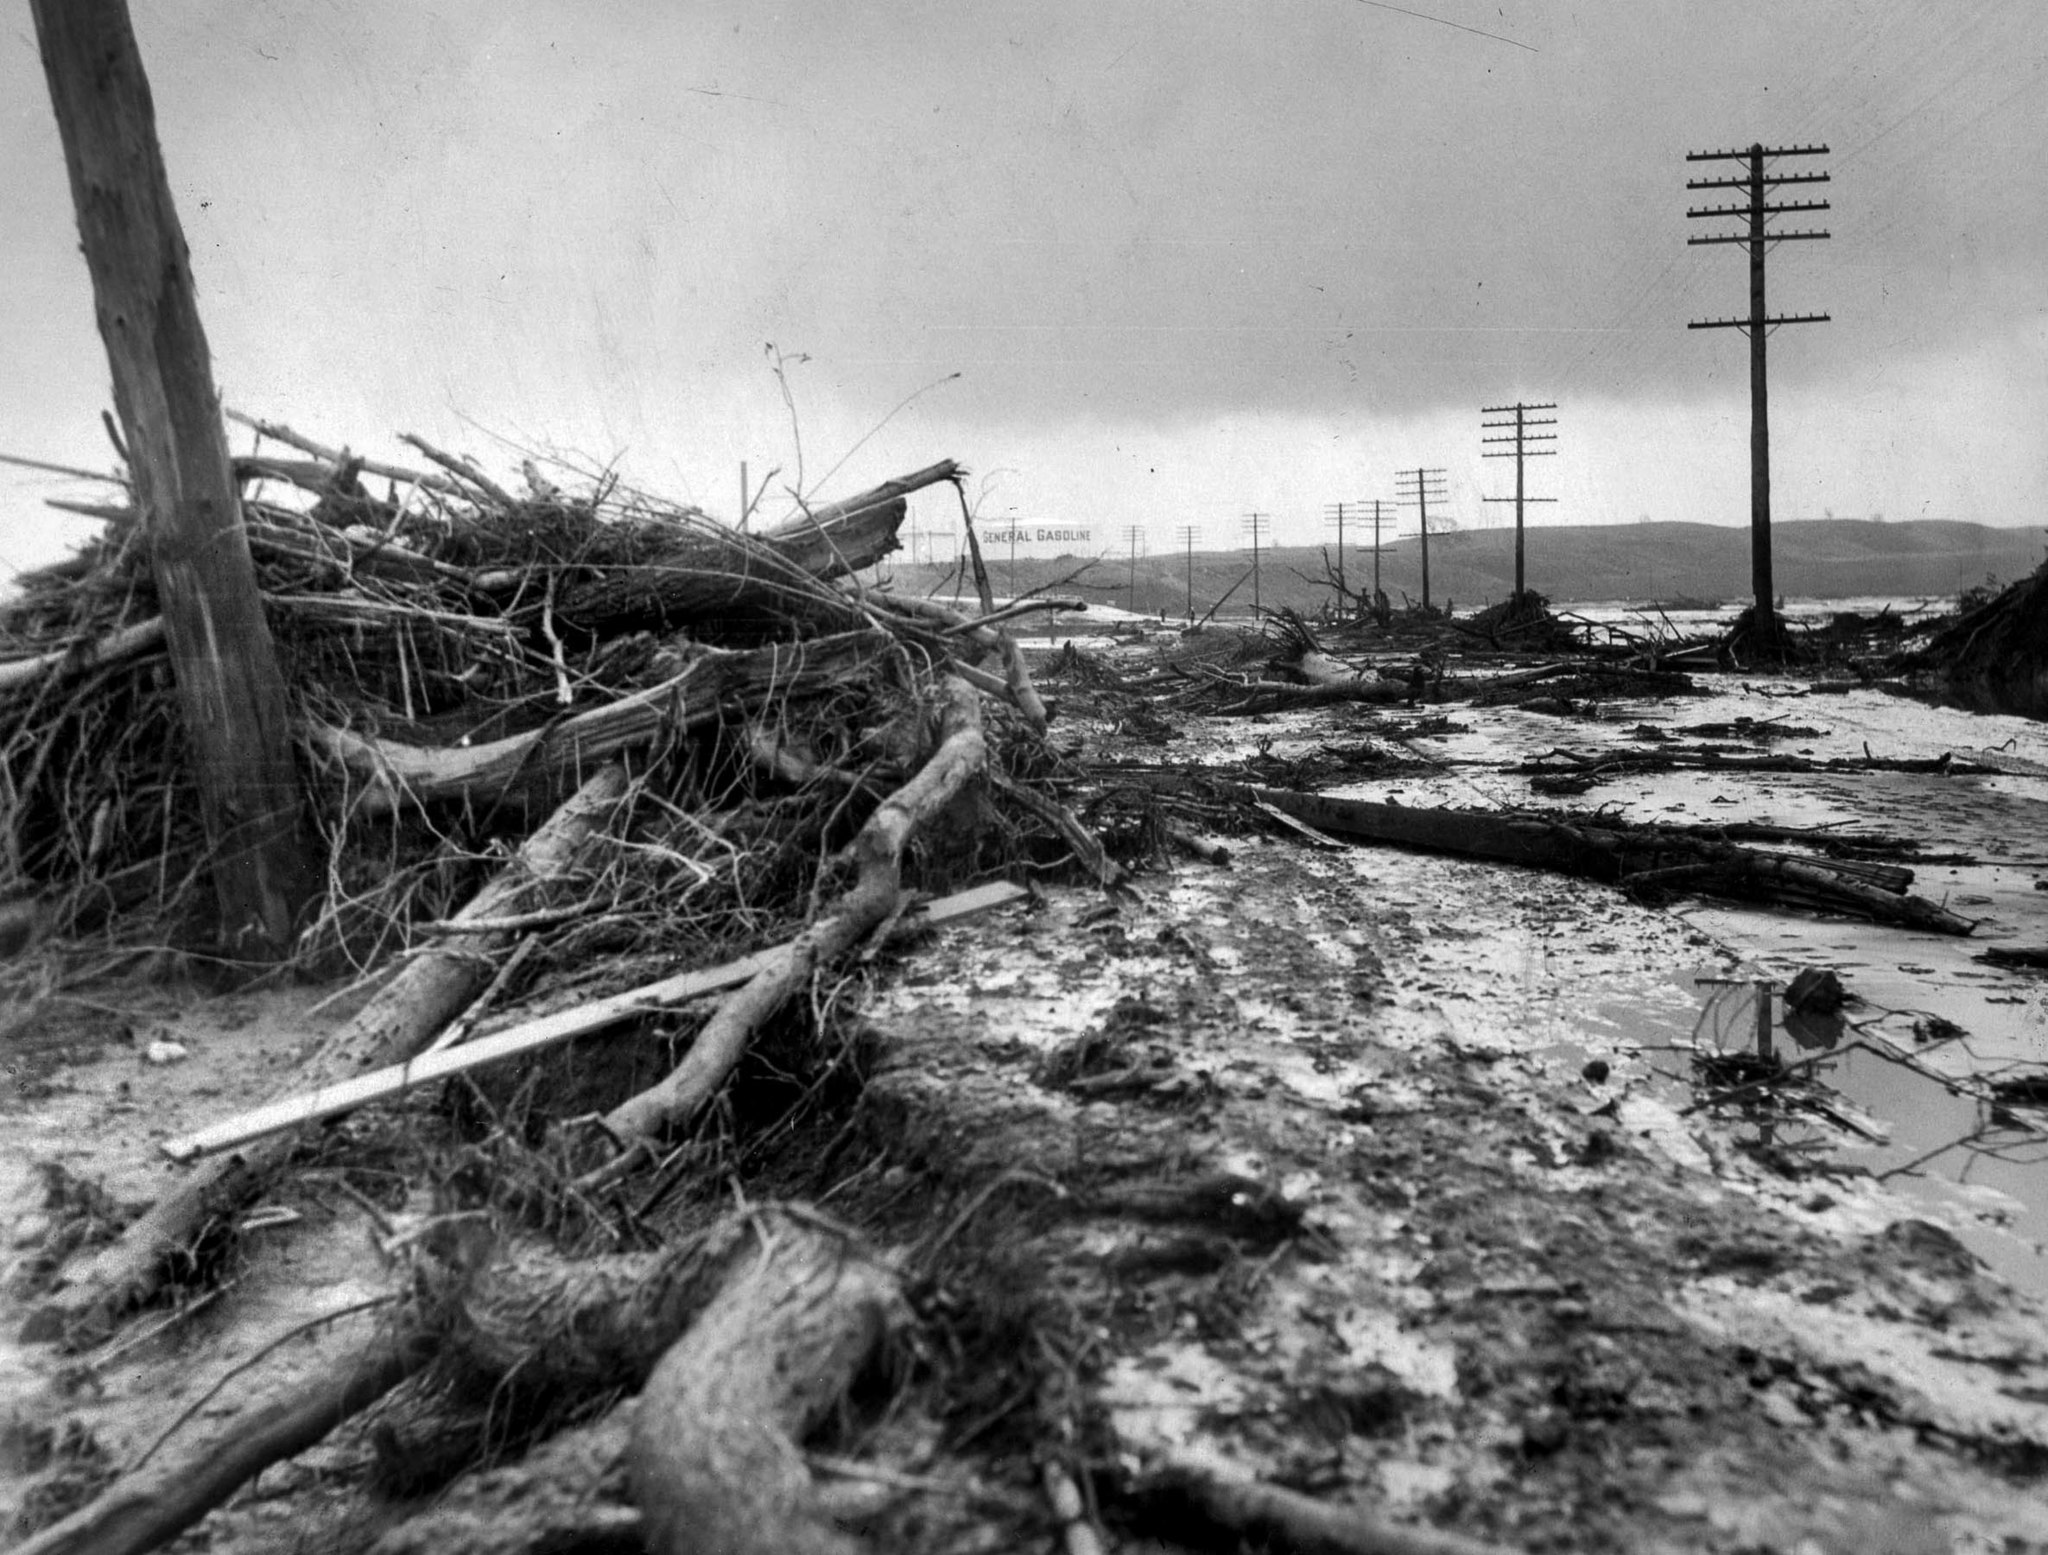 March 13, 1928: Debris littering main highway near Castaic following the collapse of the St. Francis